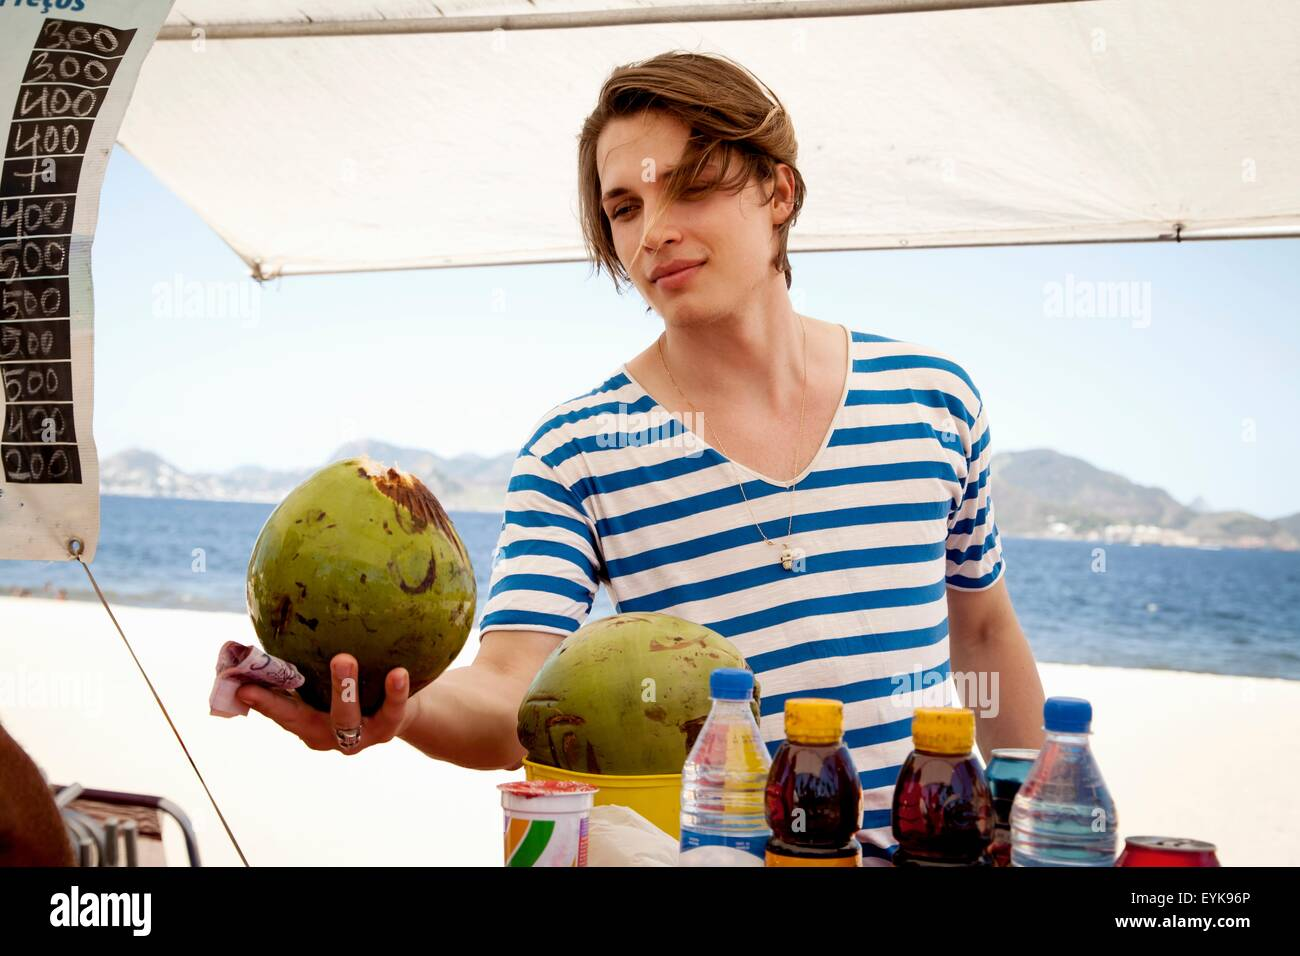 Young man buying coconut from kiosk - Stock Image